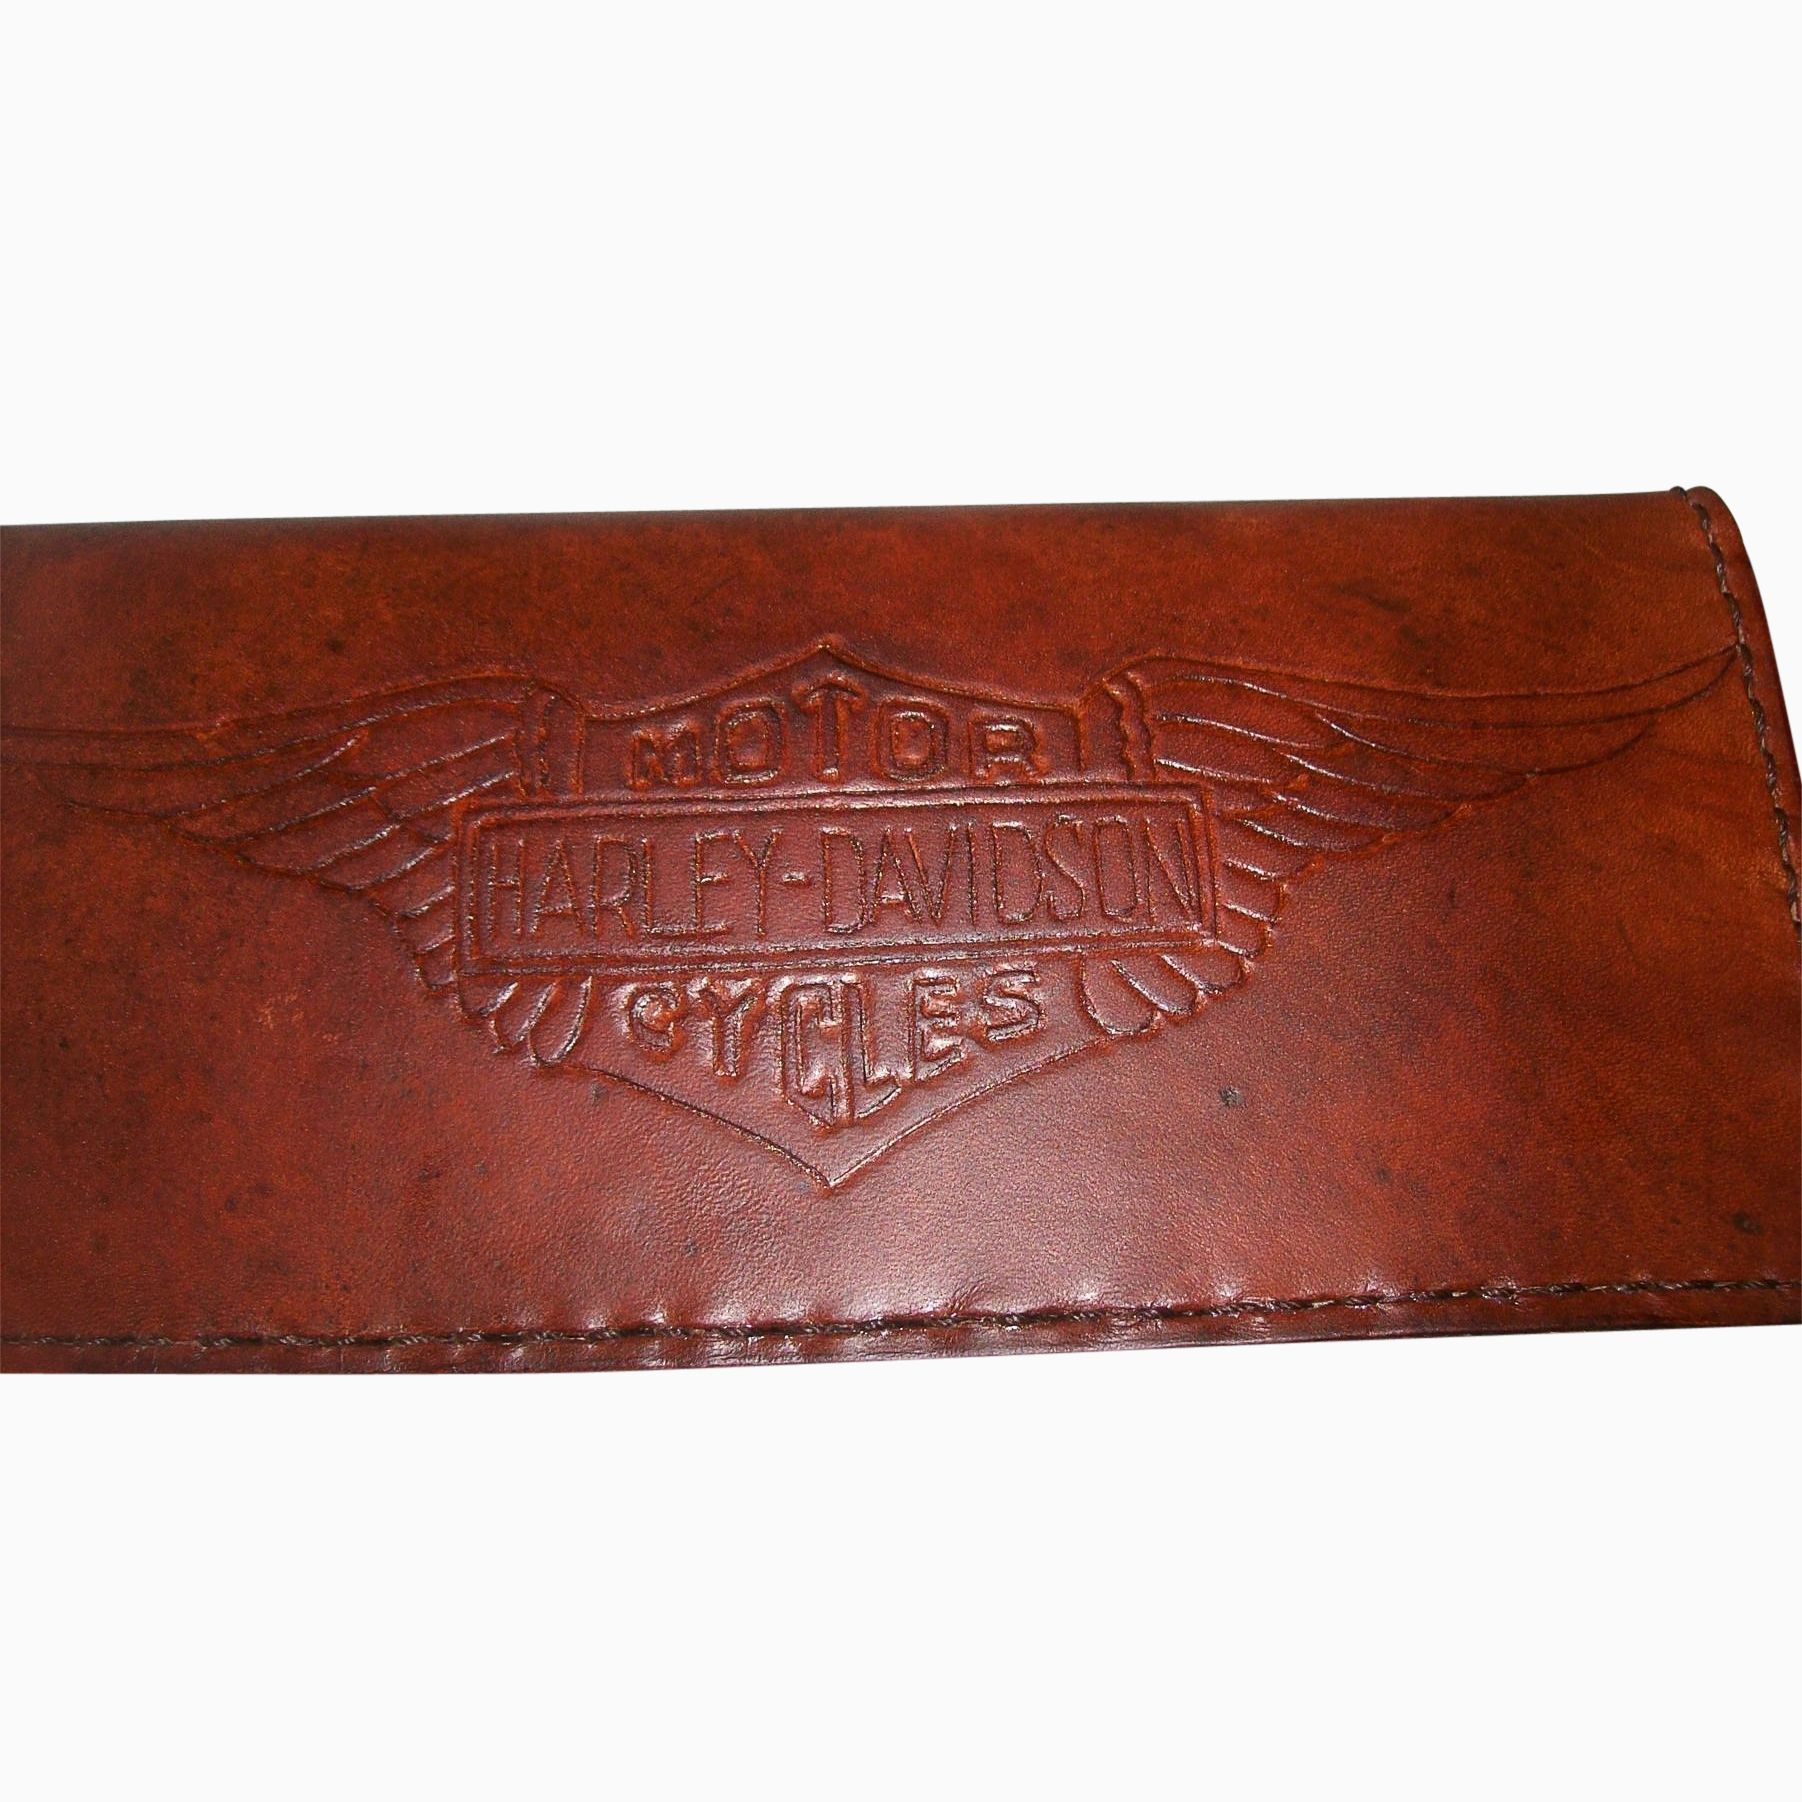 Buy a Hand Crafted Handcrafted Leather Harley Davidson Biker Wallet ...